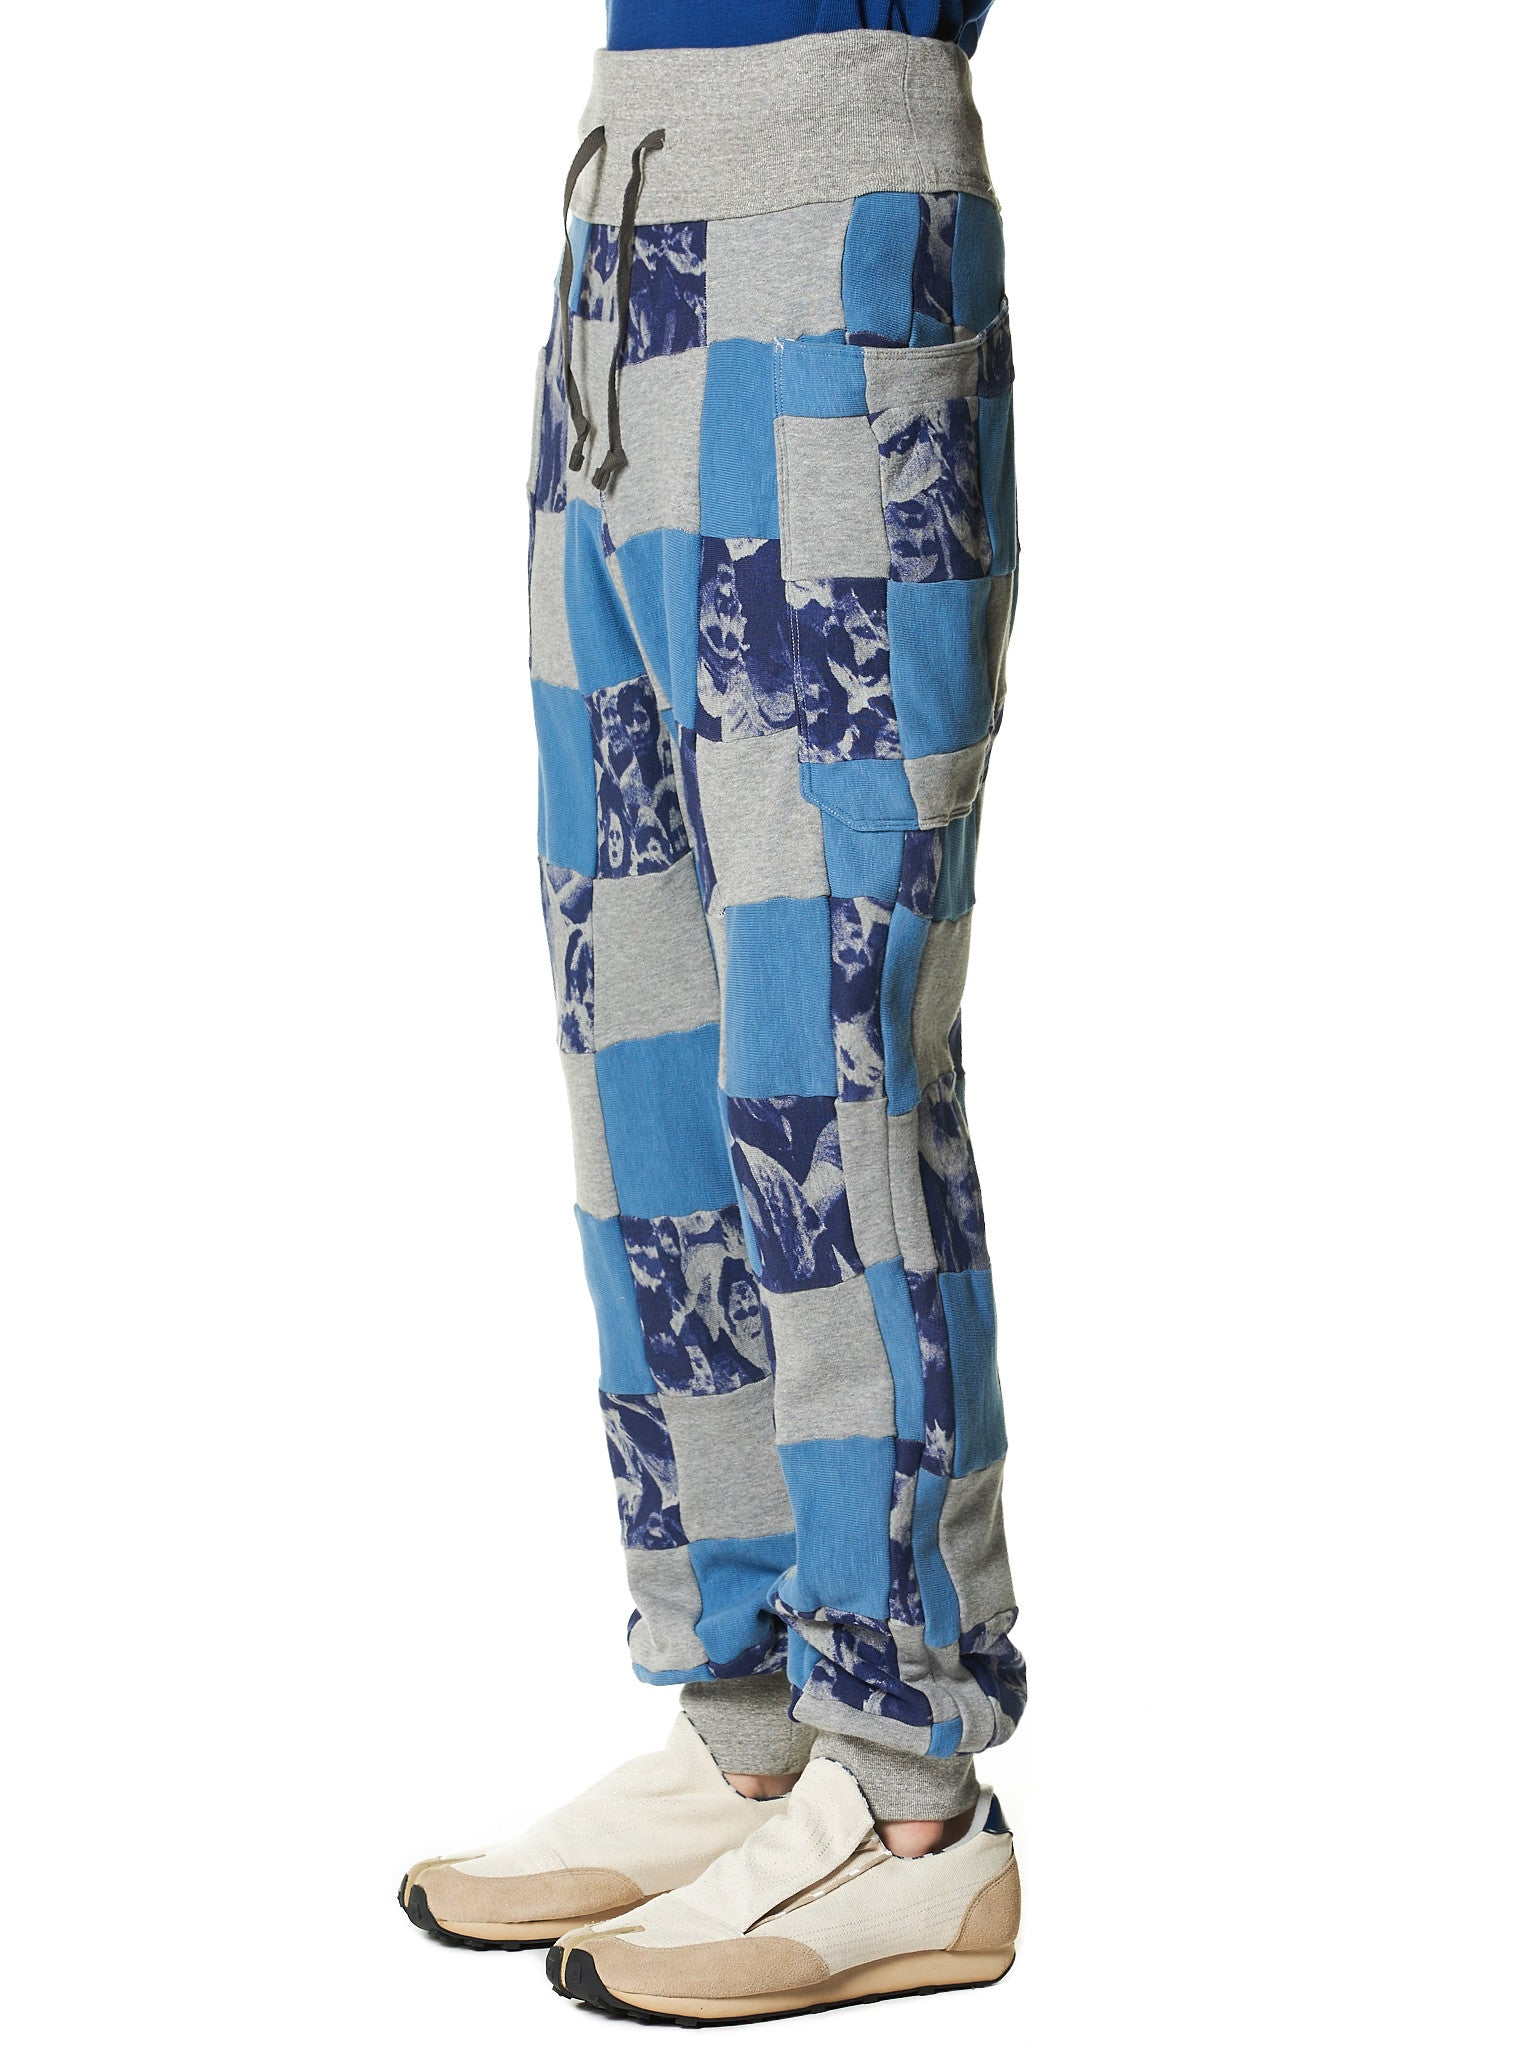 Checkered Patchwork Sweatpants (K1412LP73 PURPLE) - H. Lorenzo